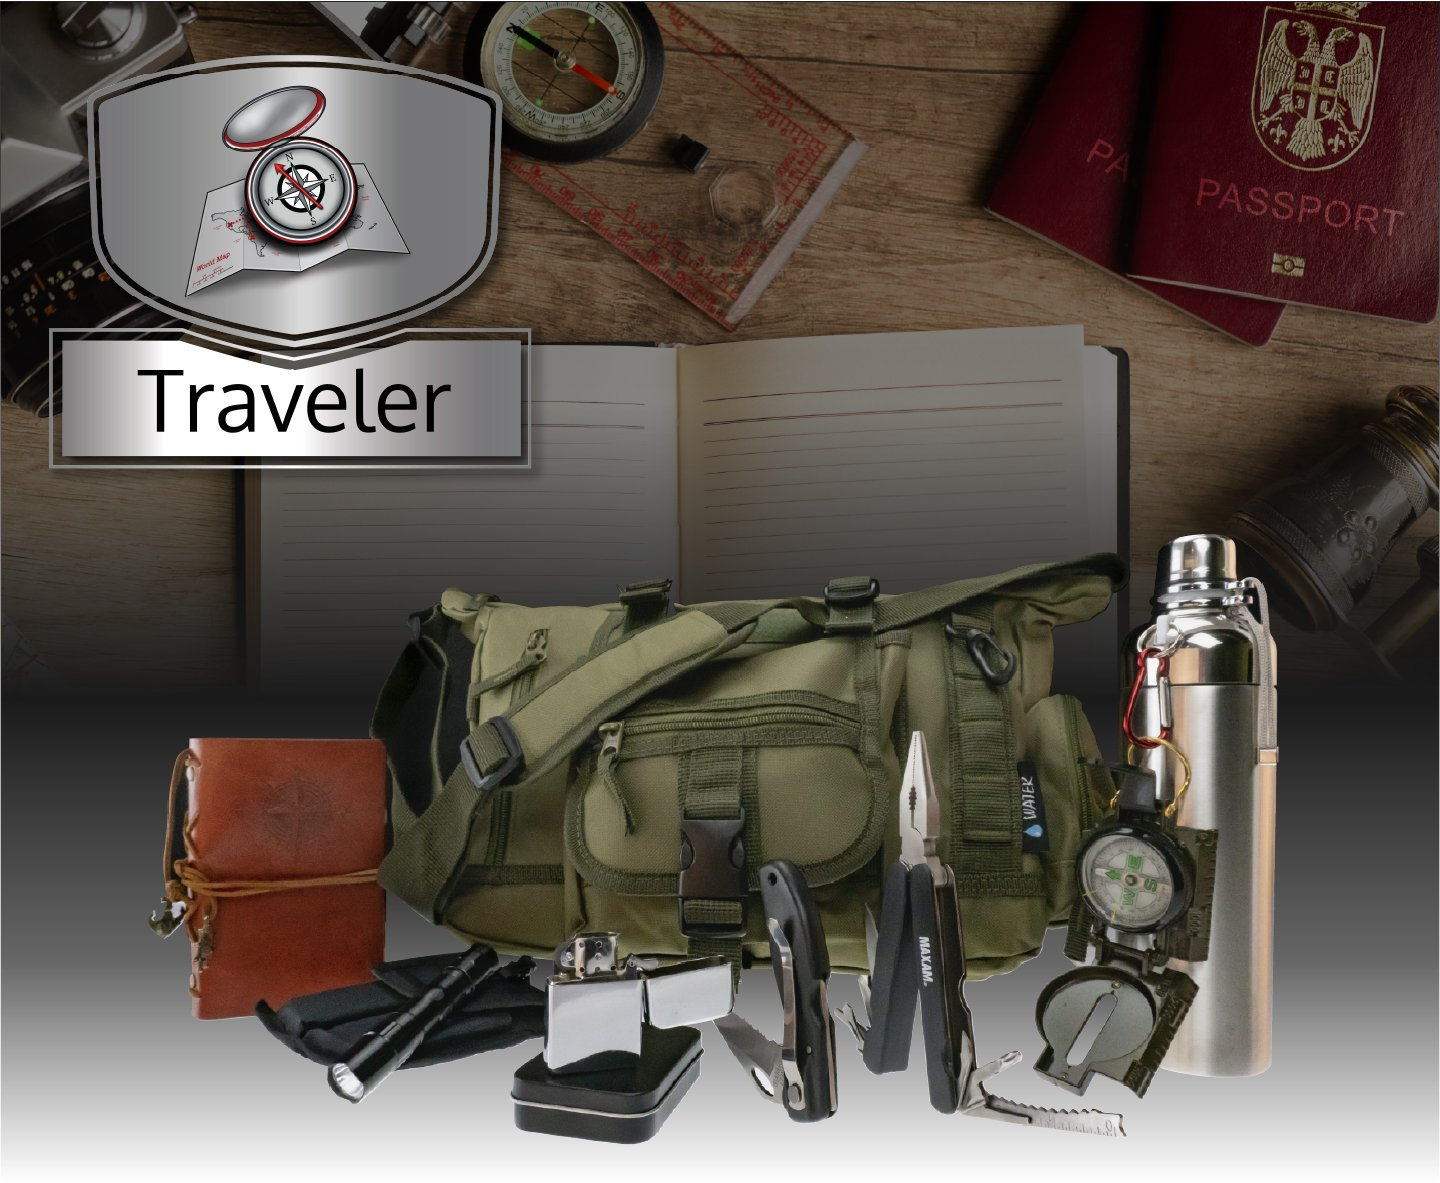 Traveler: Plus+ Pack